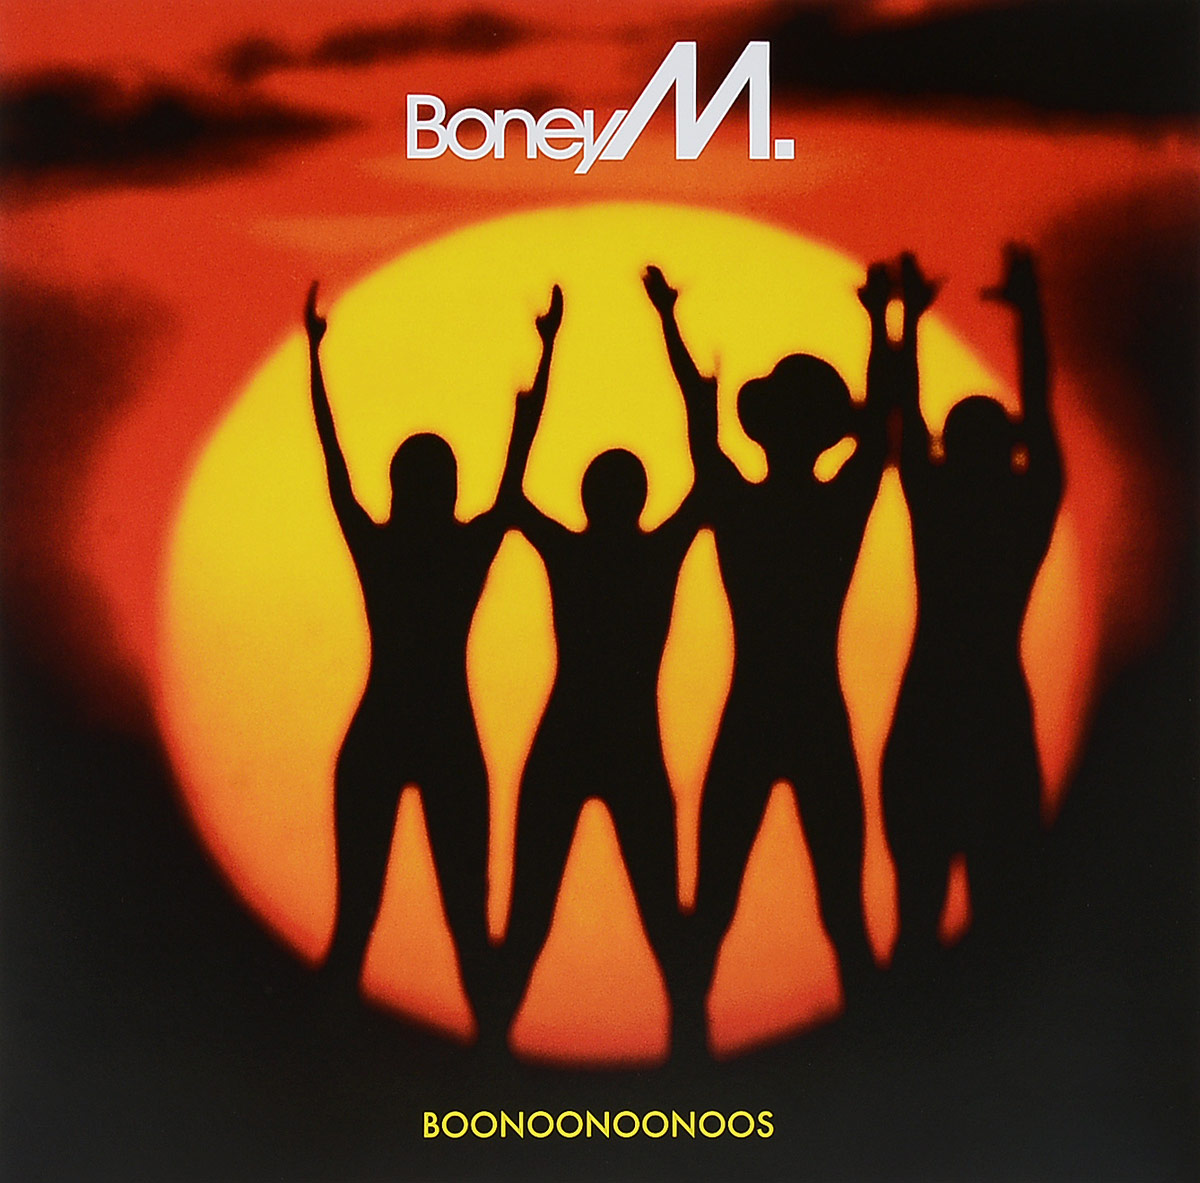 Boney M Boney M. Boonoonoonoos (LP) boney m boney m diamonds 40th anniversary lp 3cd dvd